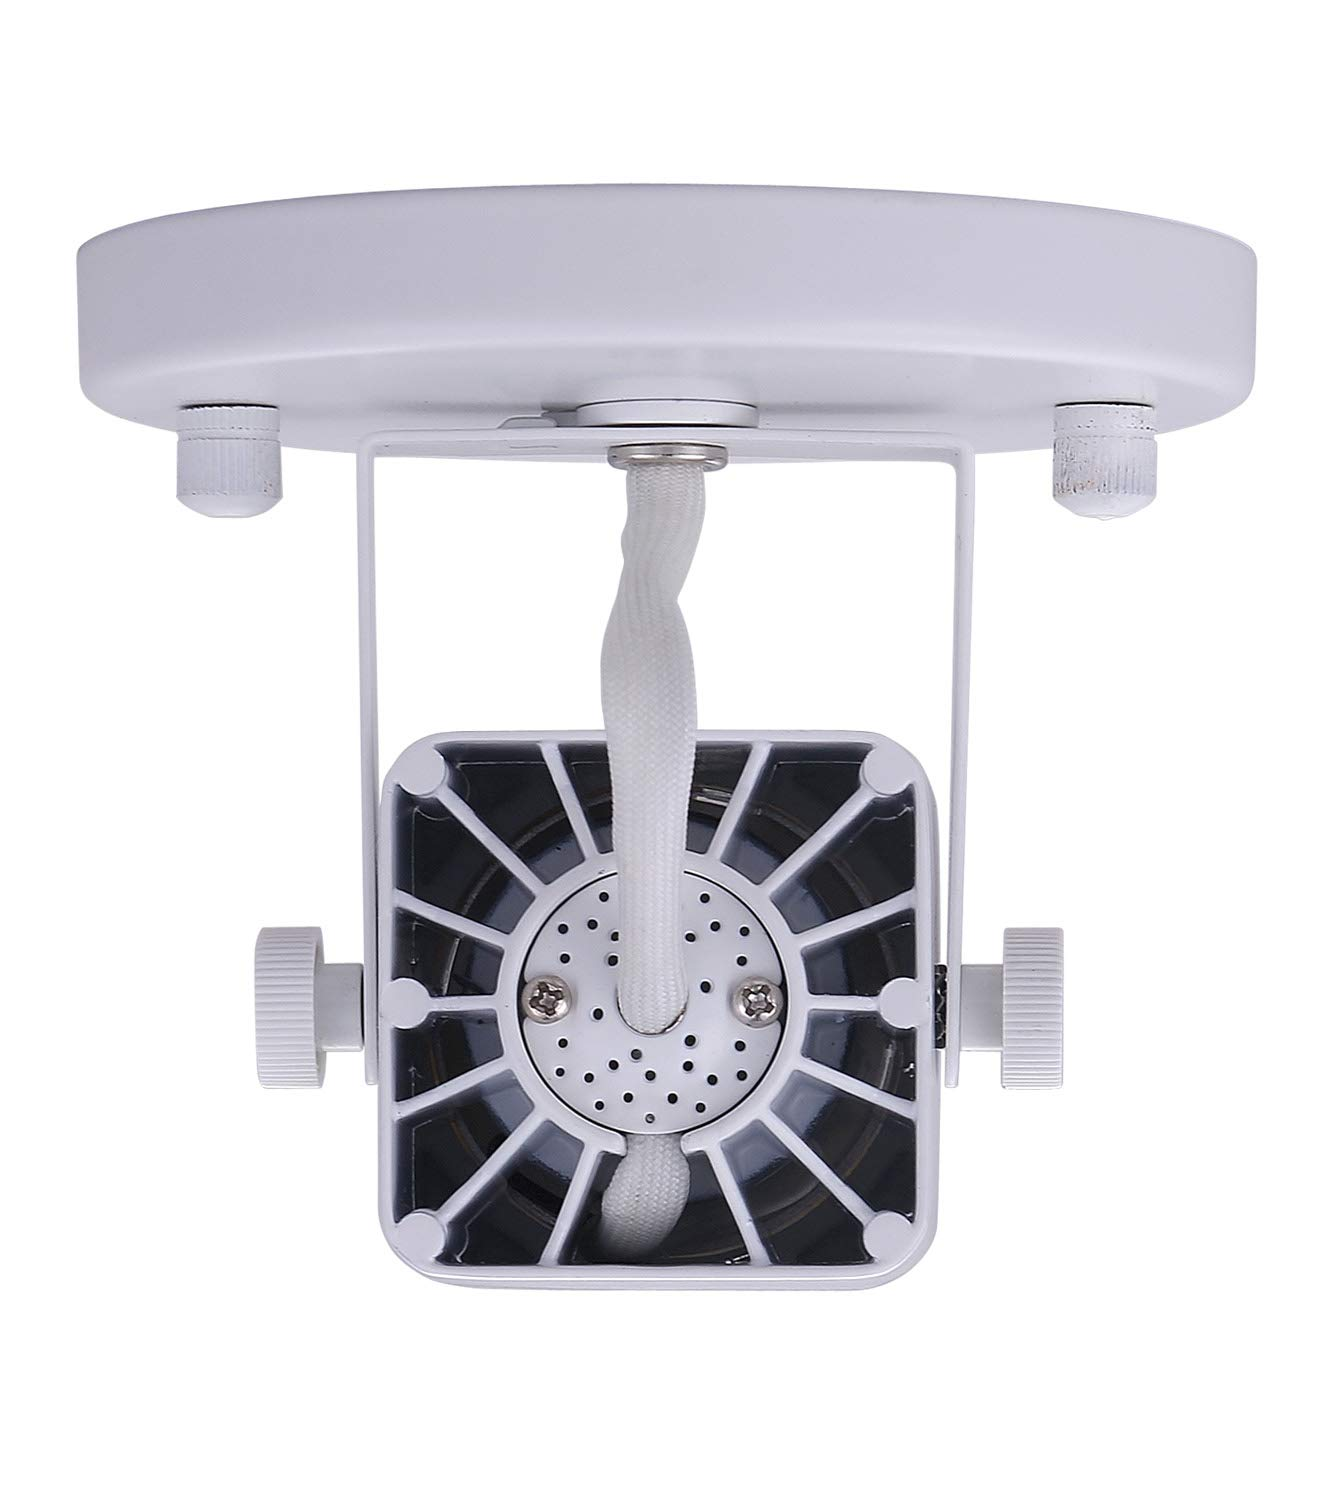 Cloudy Bay LED Ceiling Light Fixture Spot,CRI90+ Warm White Dimmable,White Finish by Cloudy Bay (Image #5)